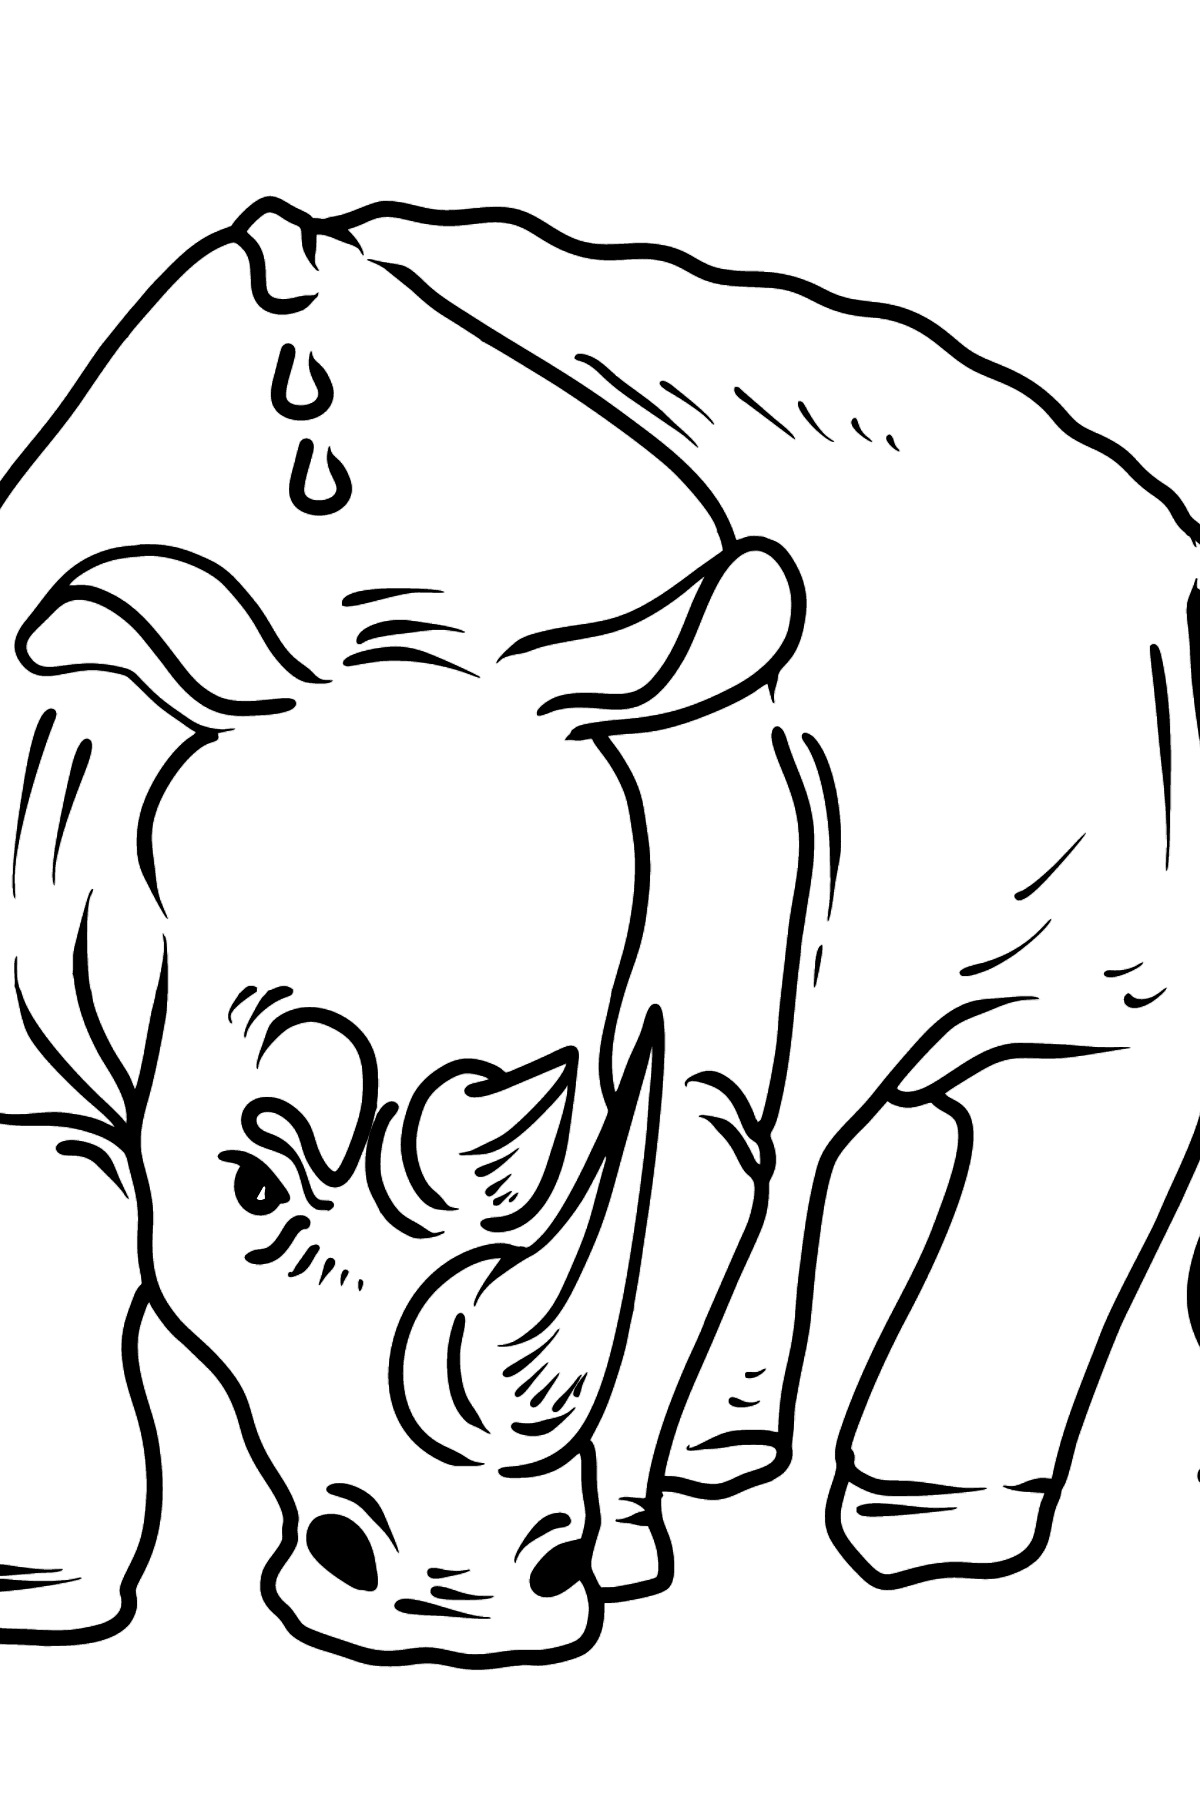 Rhino coloring page - Coloring Pages for Kids